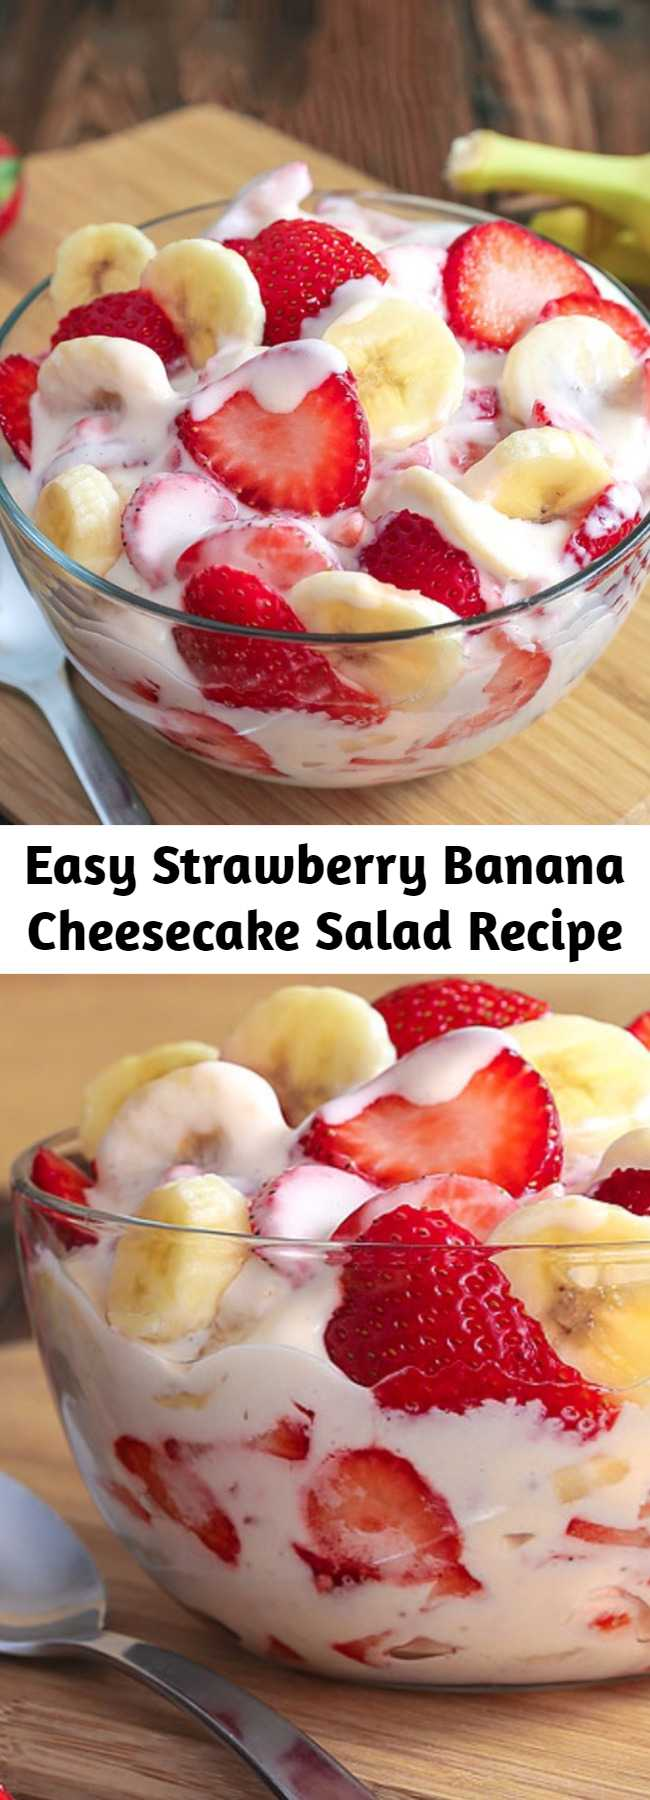 Easy Strawberry Banana Cheesecake Salad Recipe - Simple Strawberry Banana Cheesecake Salad recipe comes together with just 6 ingredients. Rich and creamy cheesecake filling is folded into luscious strawberries and sweet banana to create the most amazing, glorious fruit salad ever! #strawberries #potluckfood